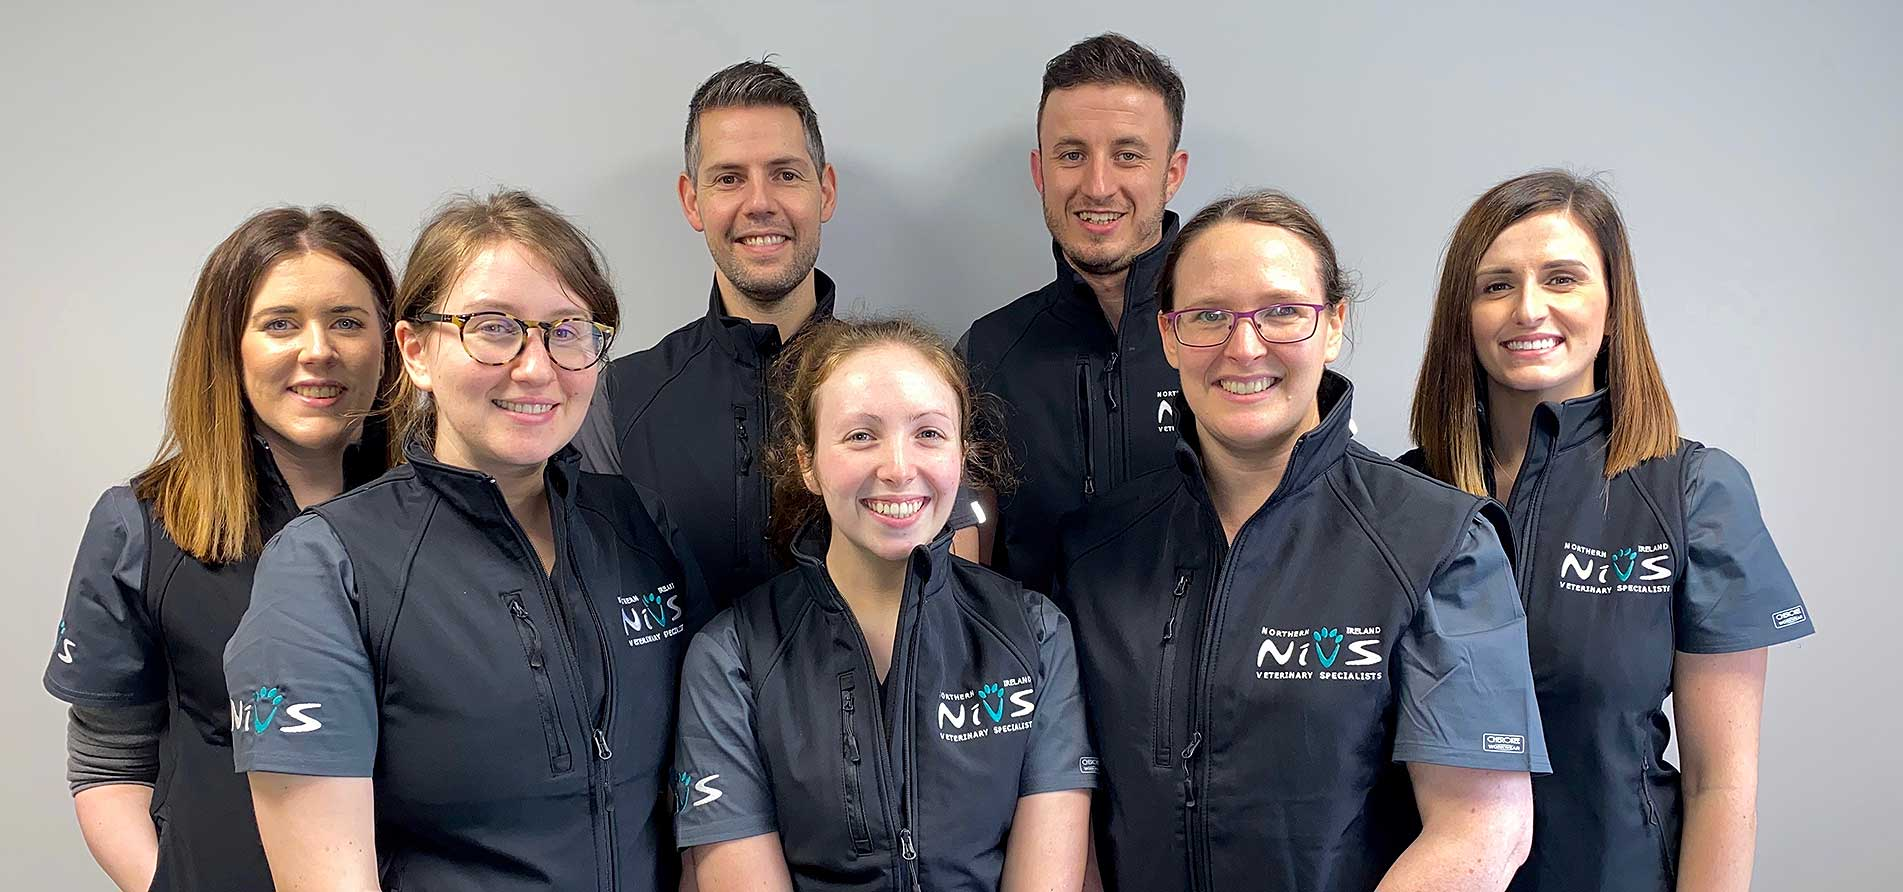 The team at Northern Ireland Veterinary Specialists